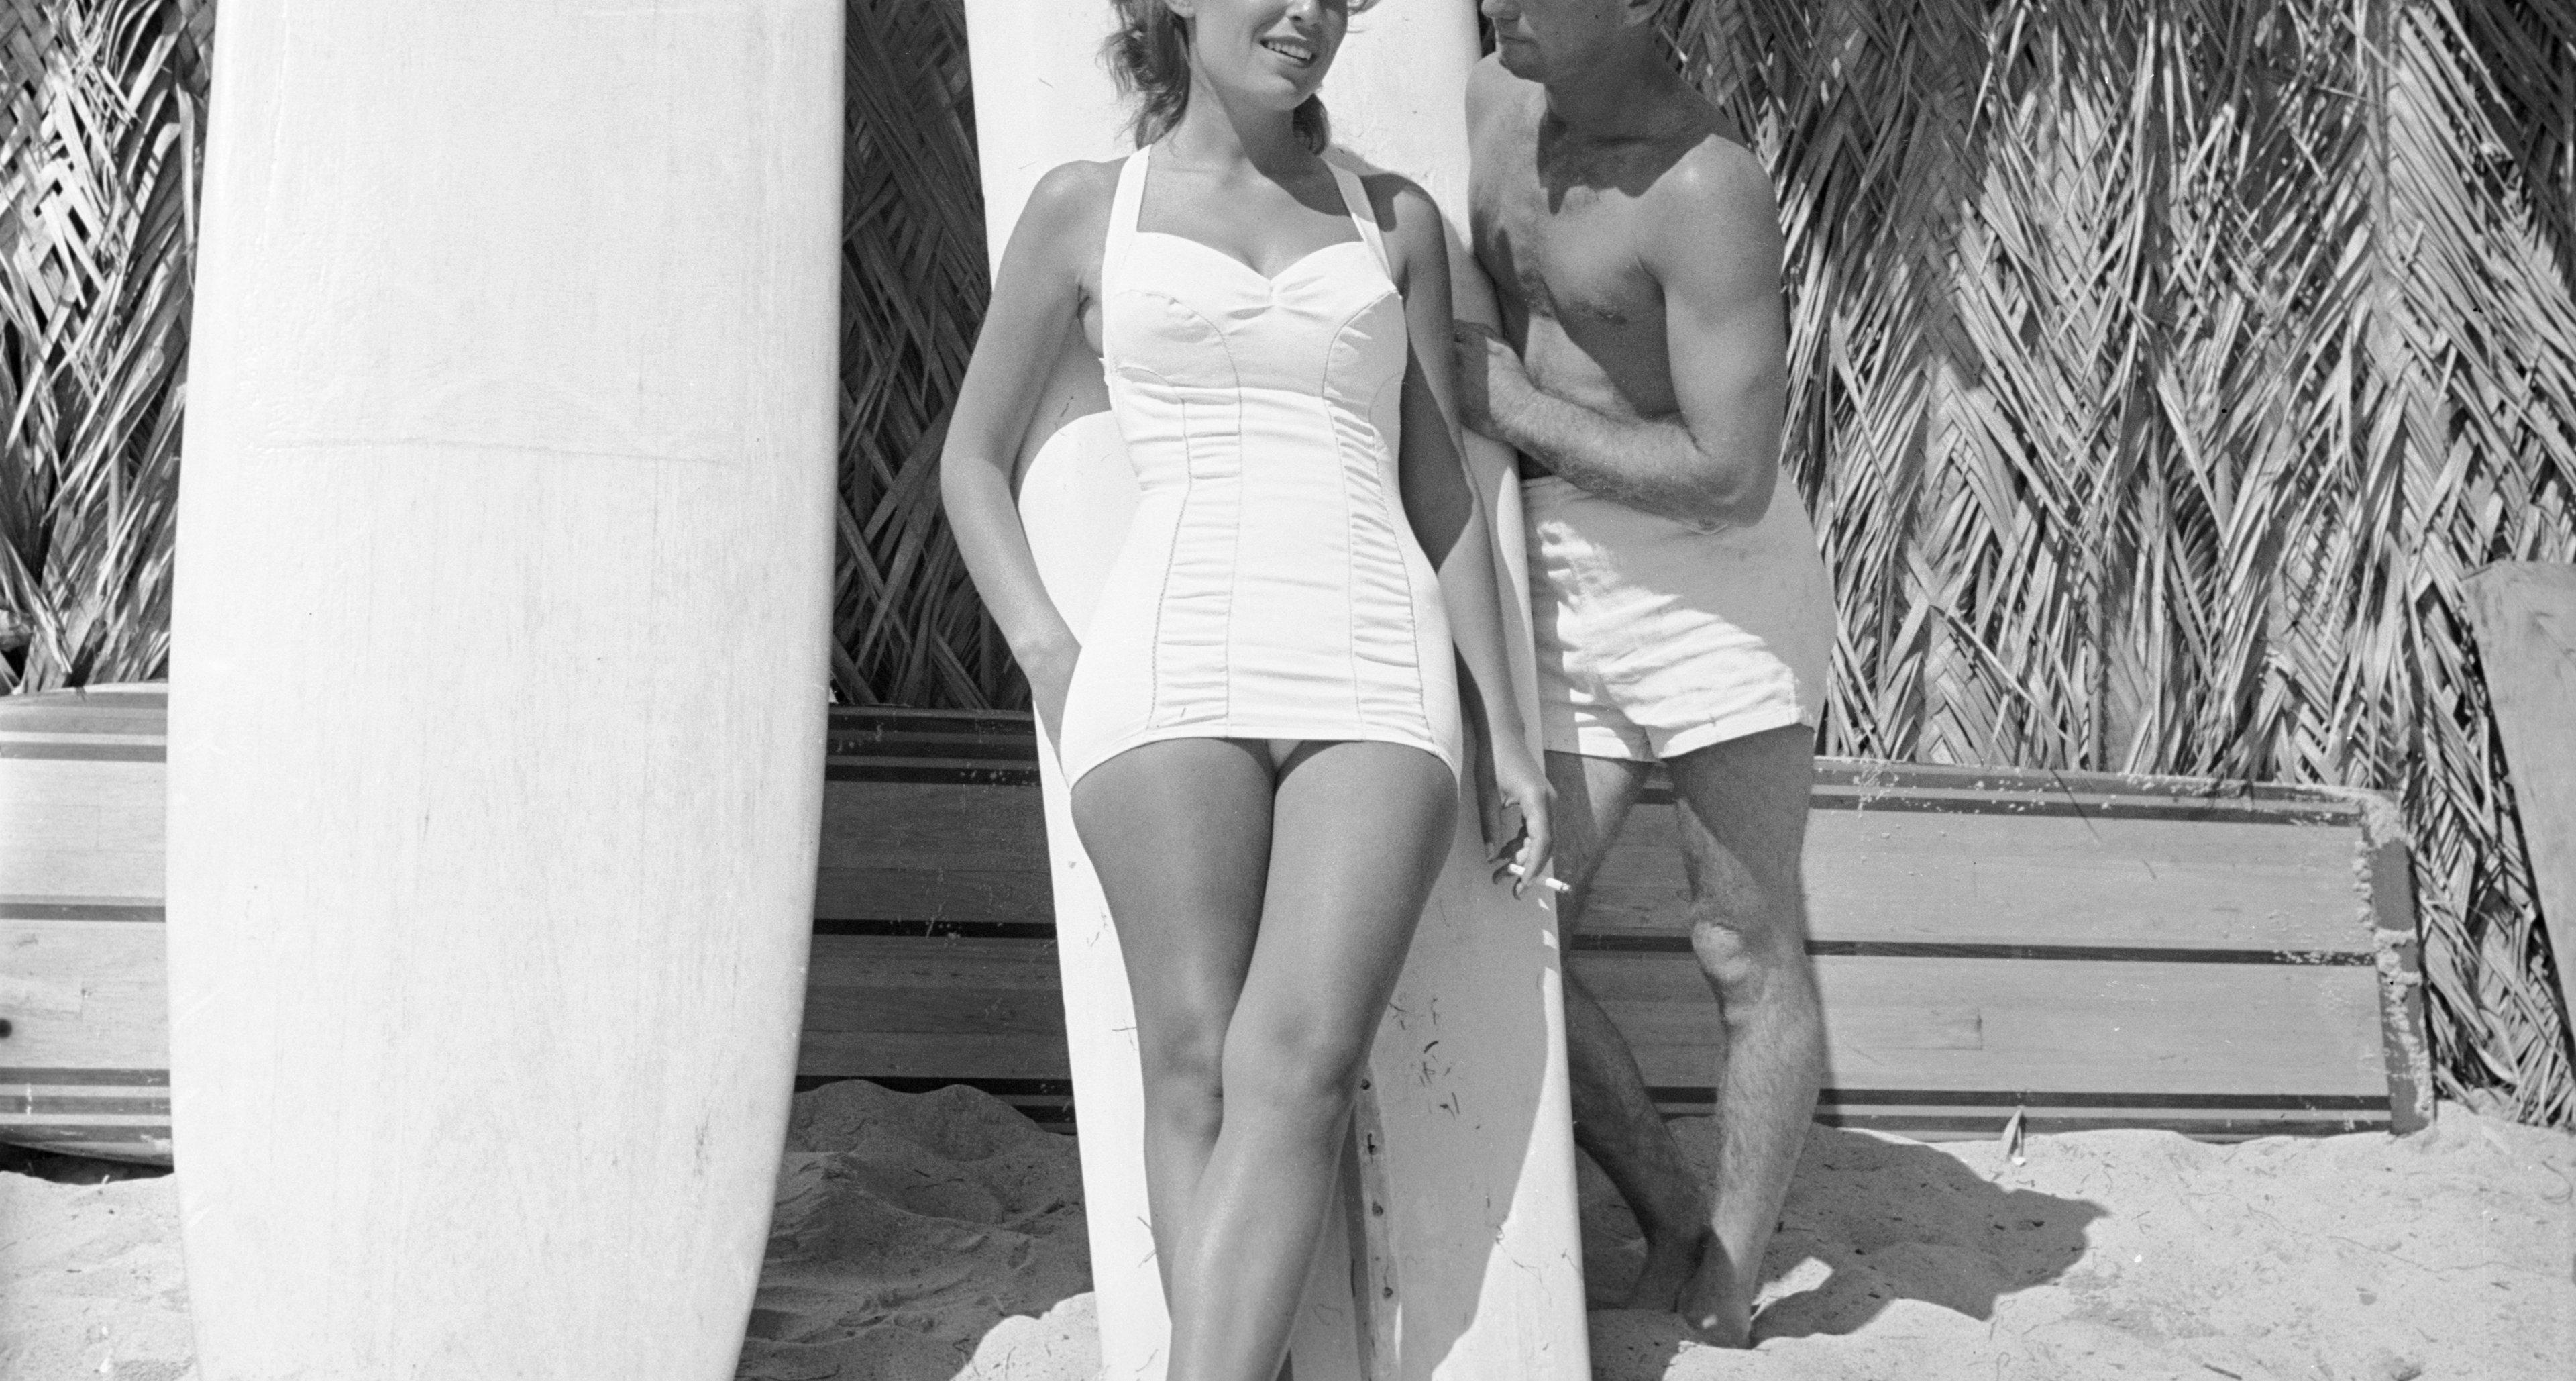 Beach bum Obert Rod and his girlfriend at the beach, San Onofre, California, July 1950.